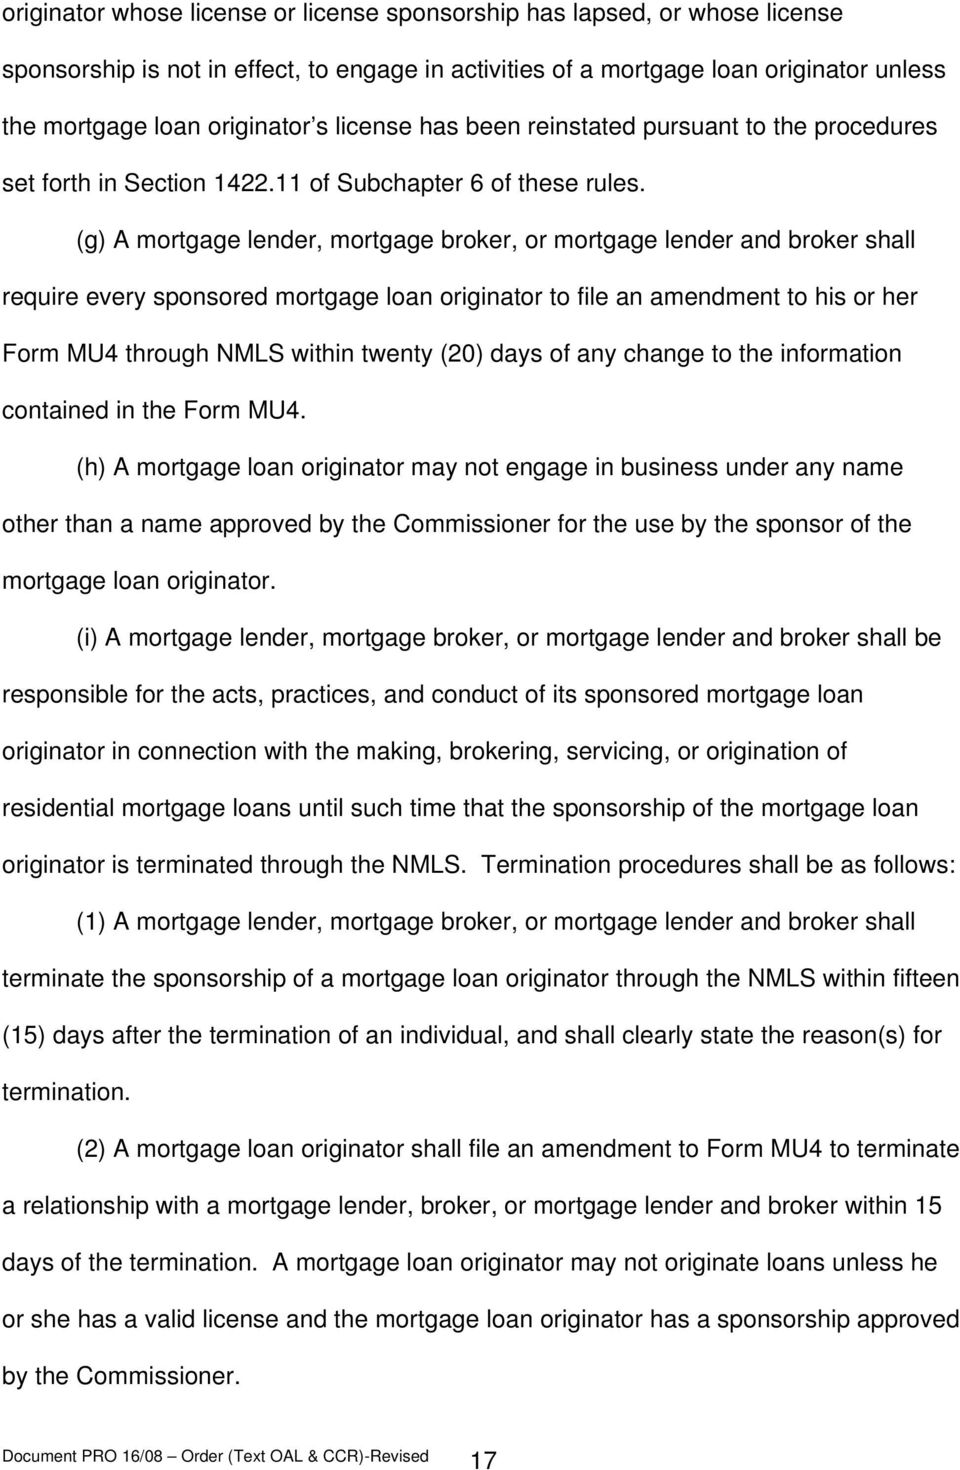 (g) A mortgage lender, mortgage broker, or mortgage lender and broker shall require every sponsored mortgage loan originator to file an amendment to his or her Form MU4 through NMLS within twenty